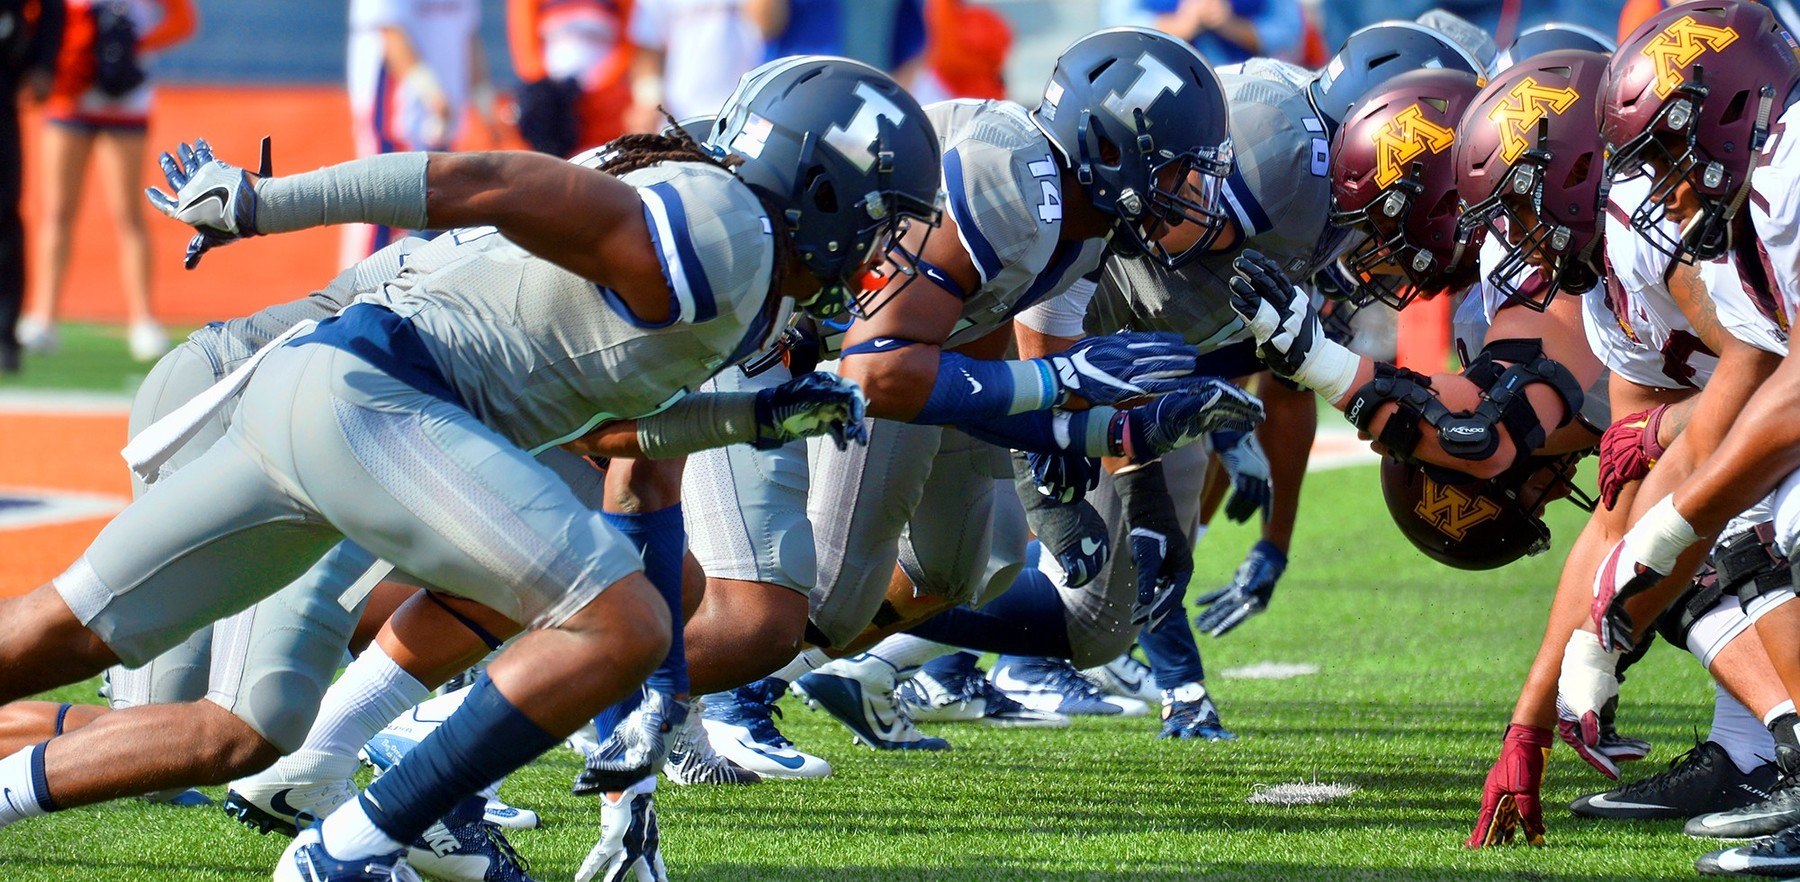 Illini football linemen wearing 'gray ghost' uniforms